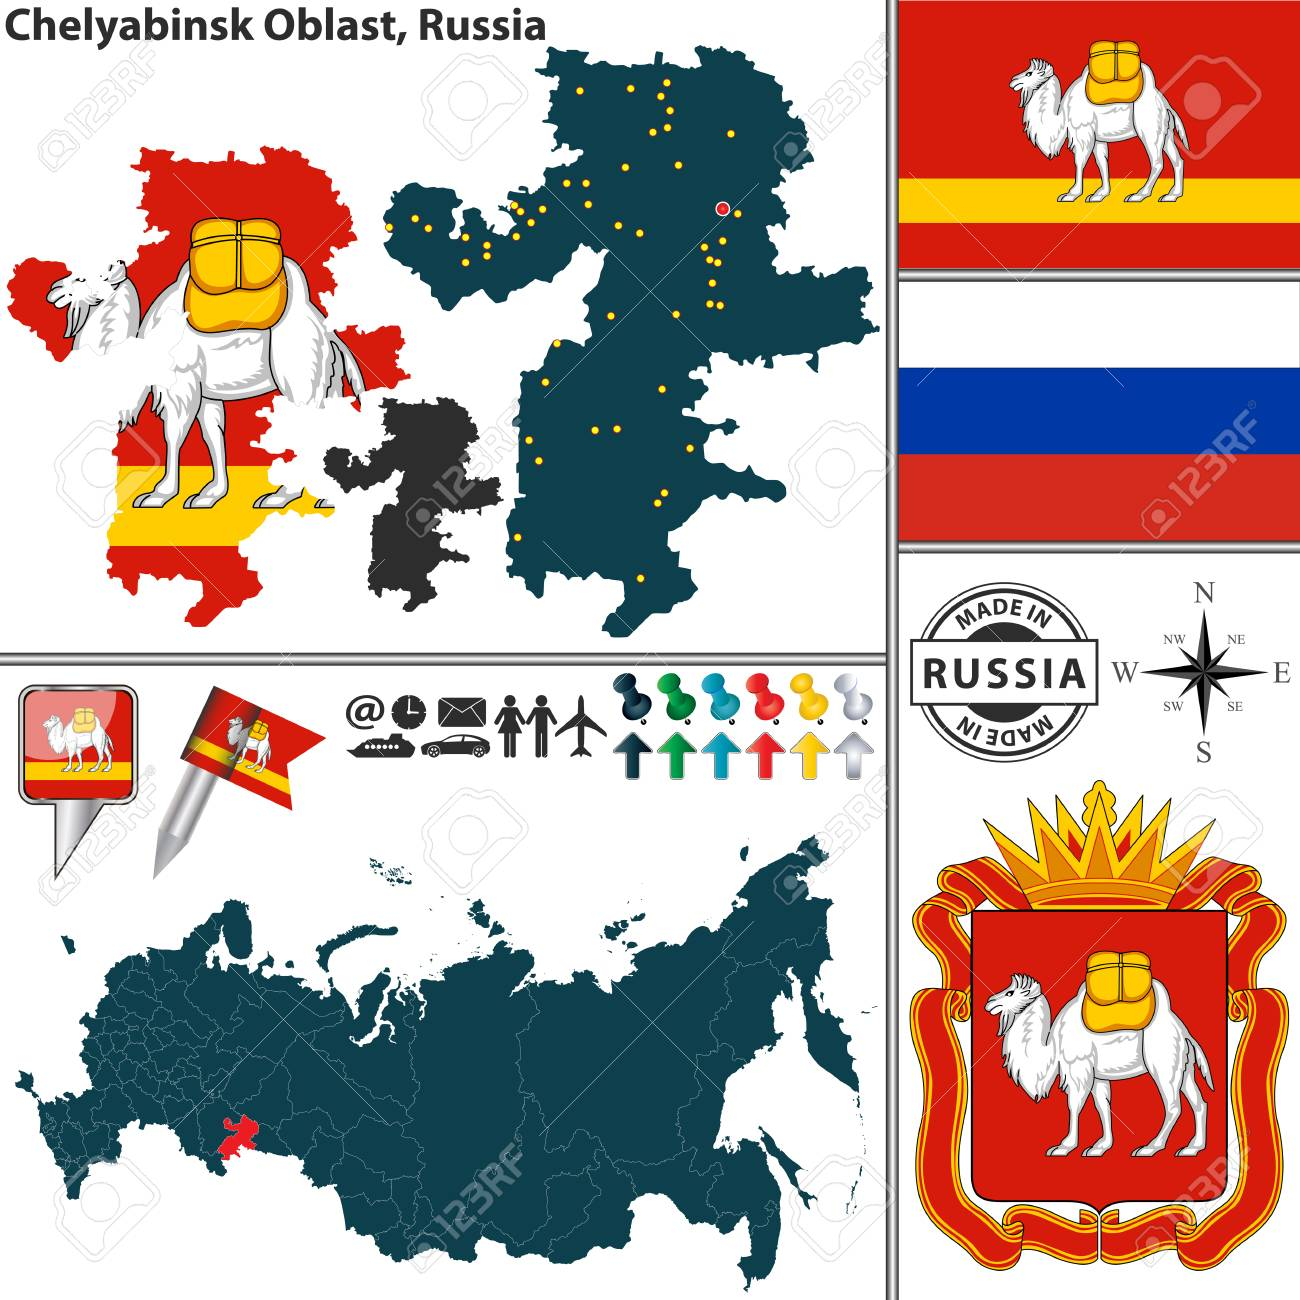 Map Of Chelyabinsk Oblast With Coat Of Arms And Location On Russian